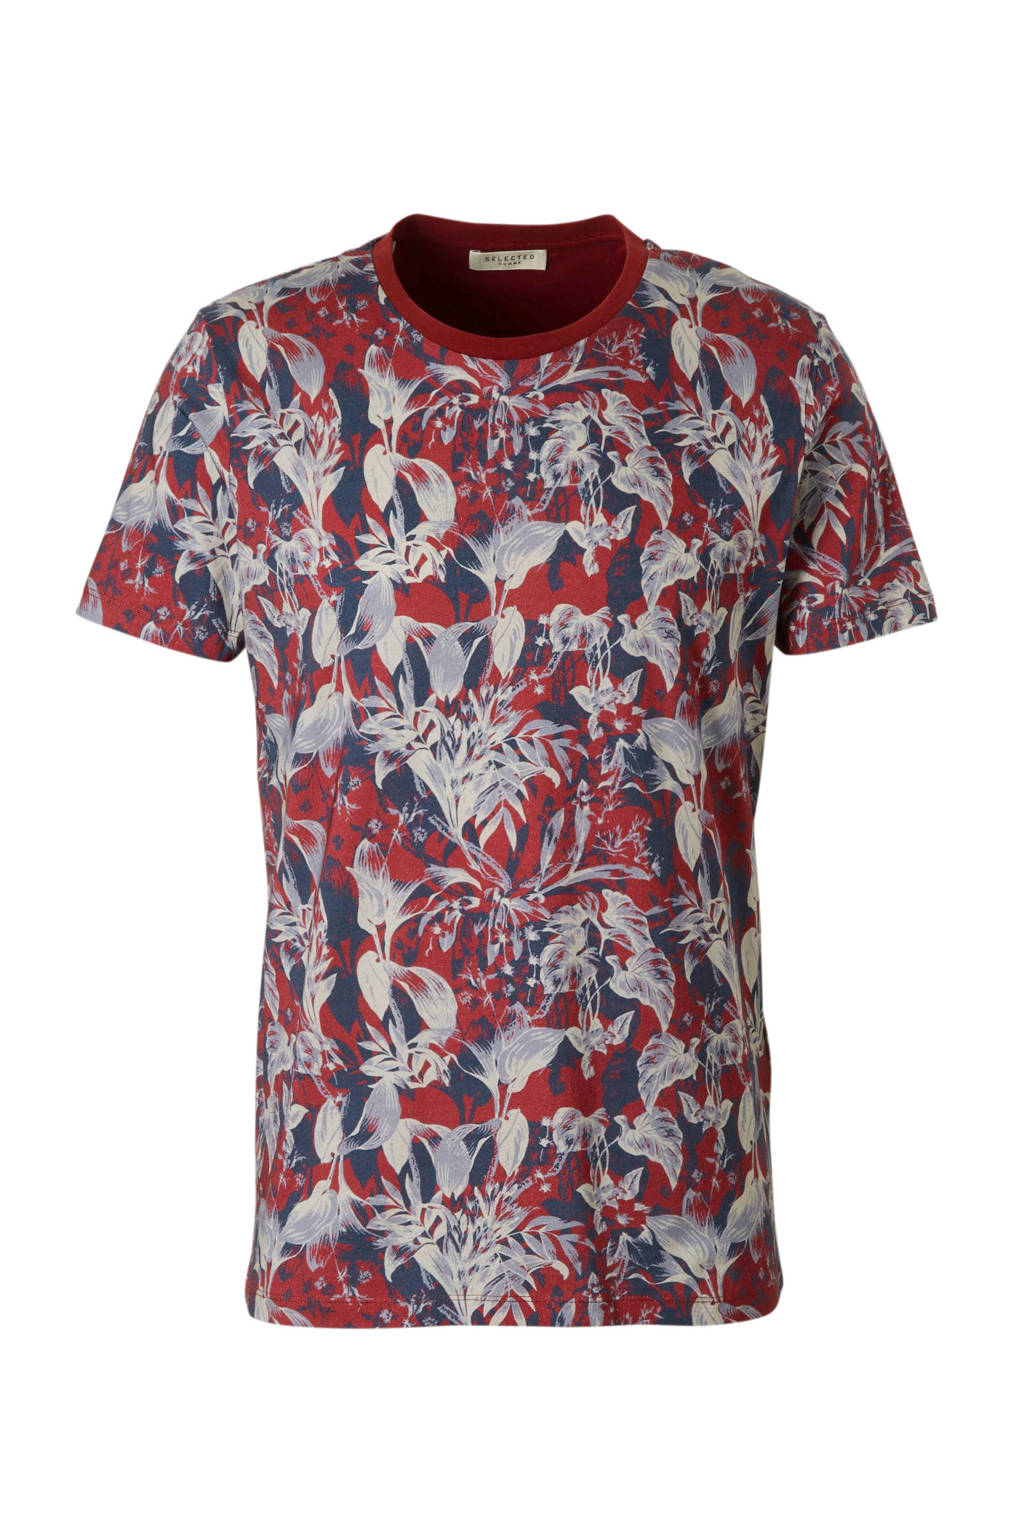 SELECTED HOMME T-shirt met allover print, Rood/blauw